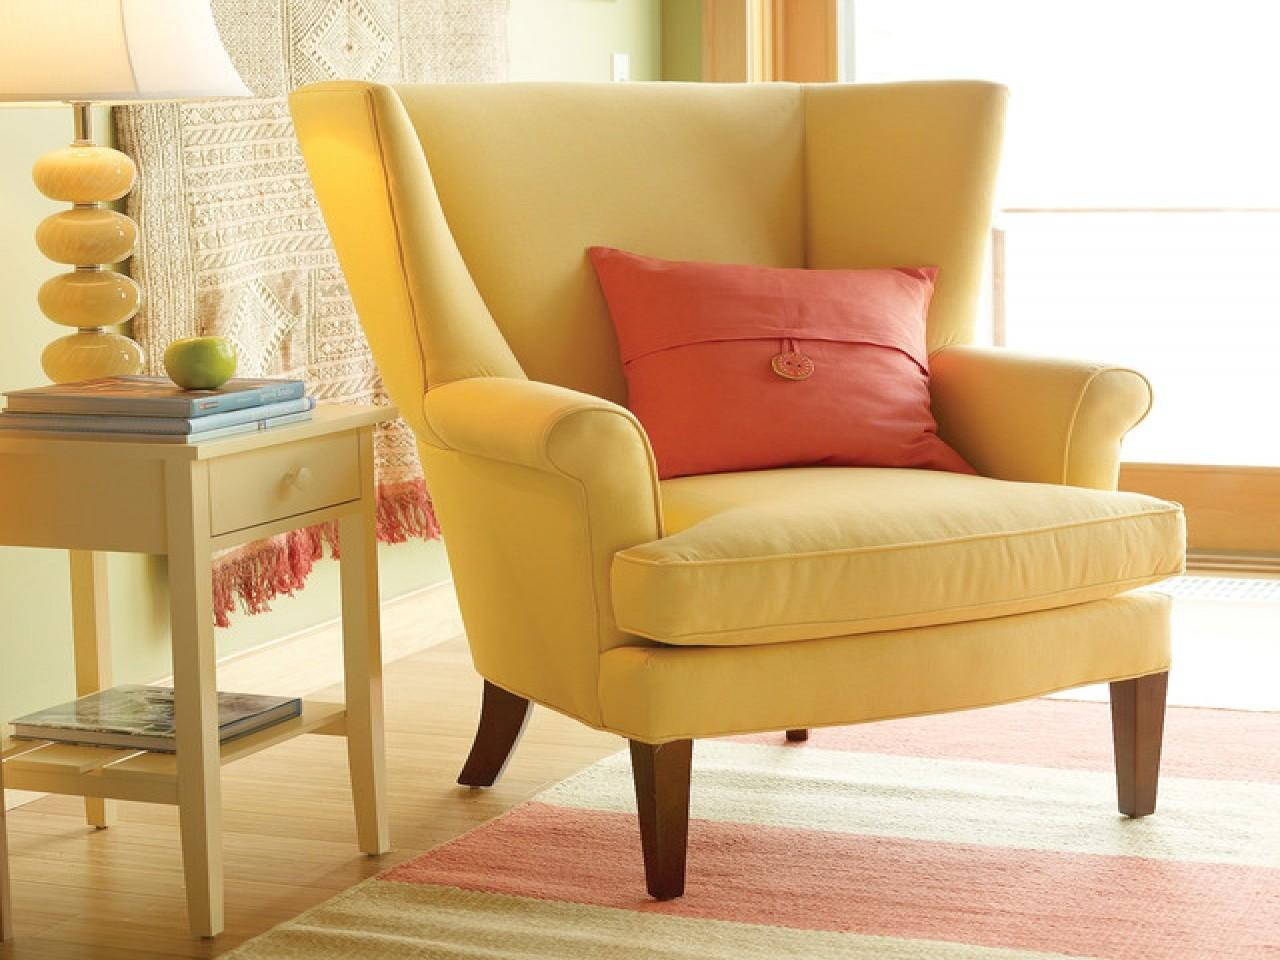 Traditional Living Room Chairs Yellow Chair